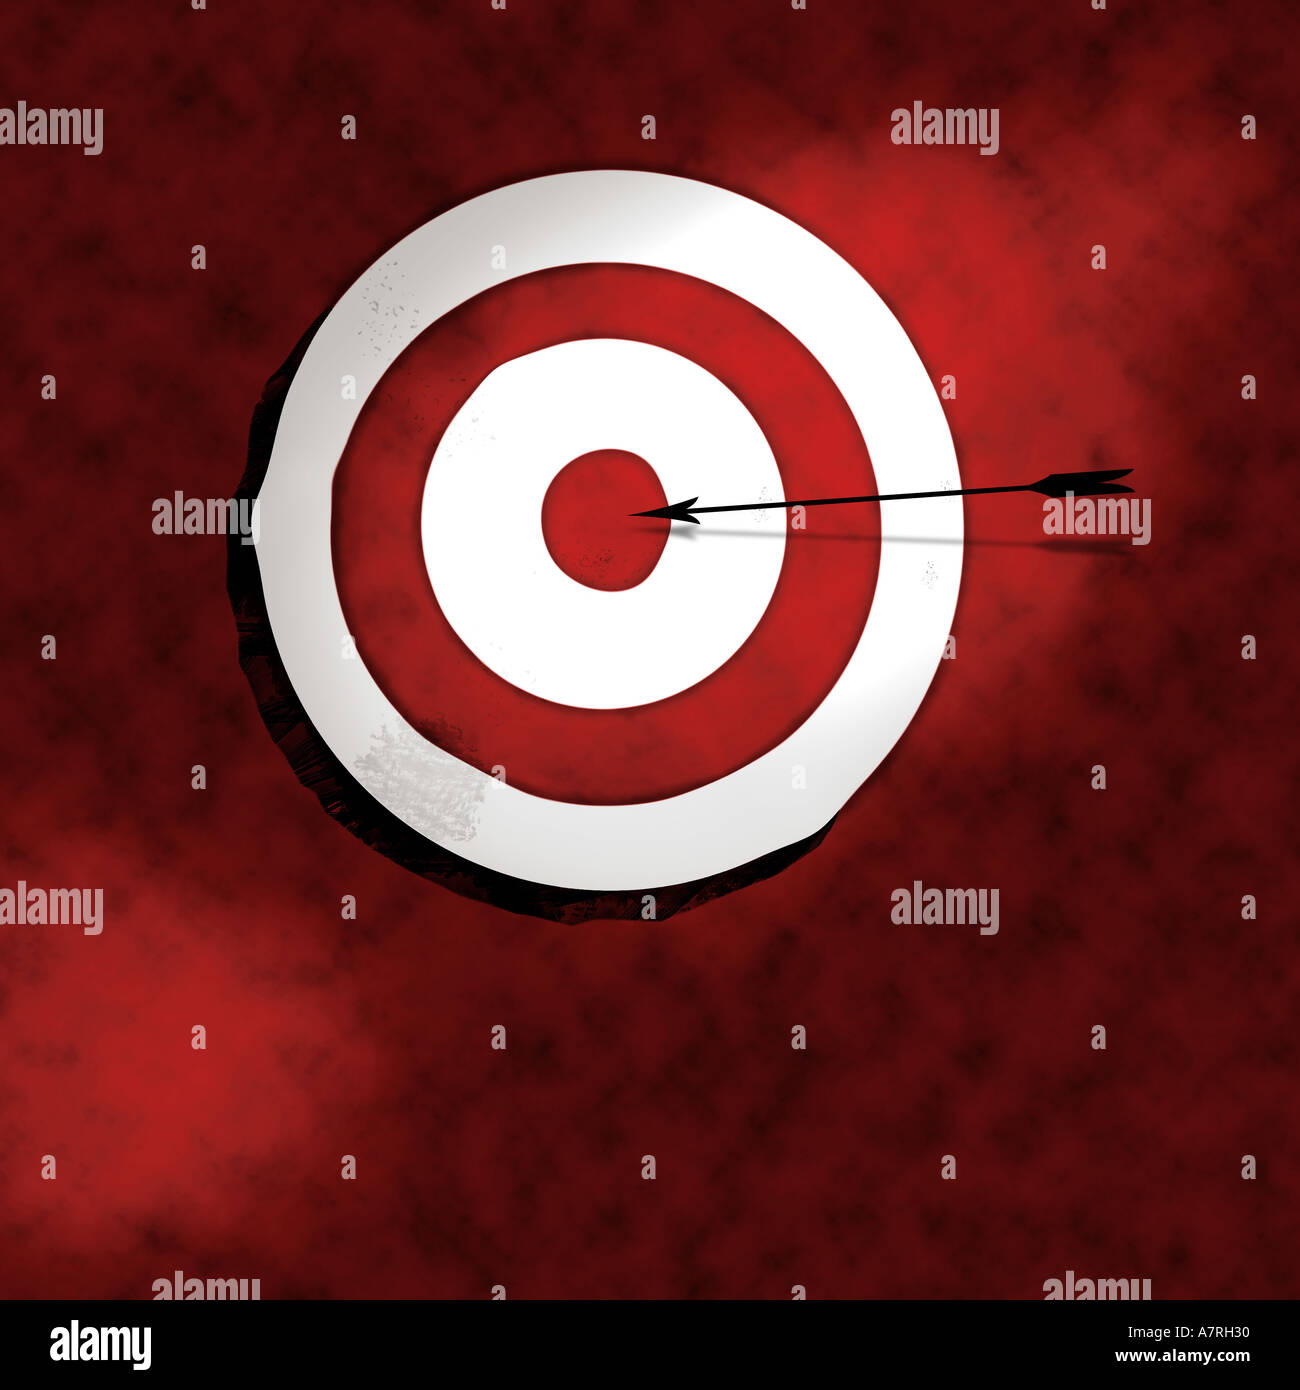 Bullseye with arrow illustration Stock Photo